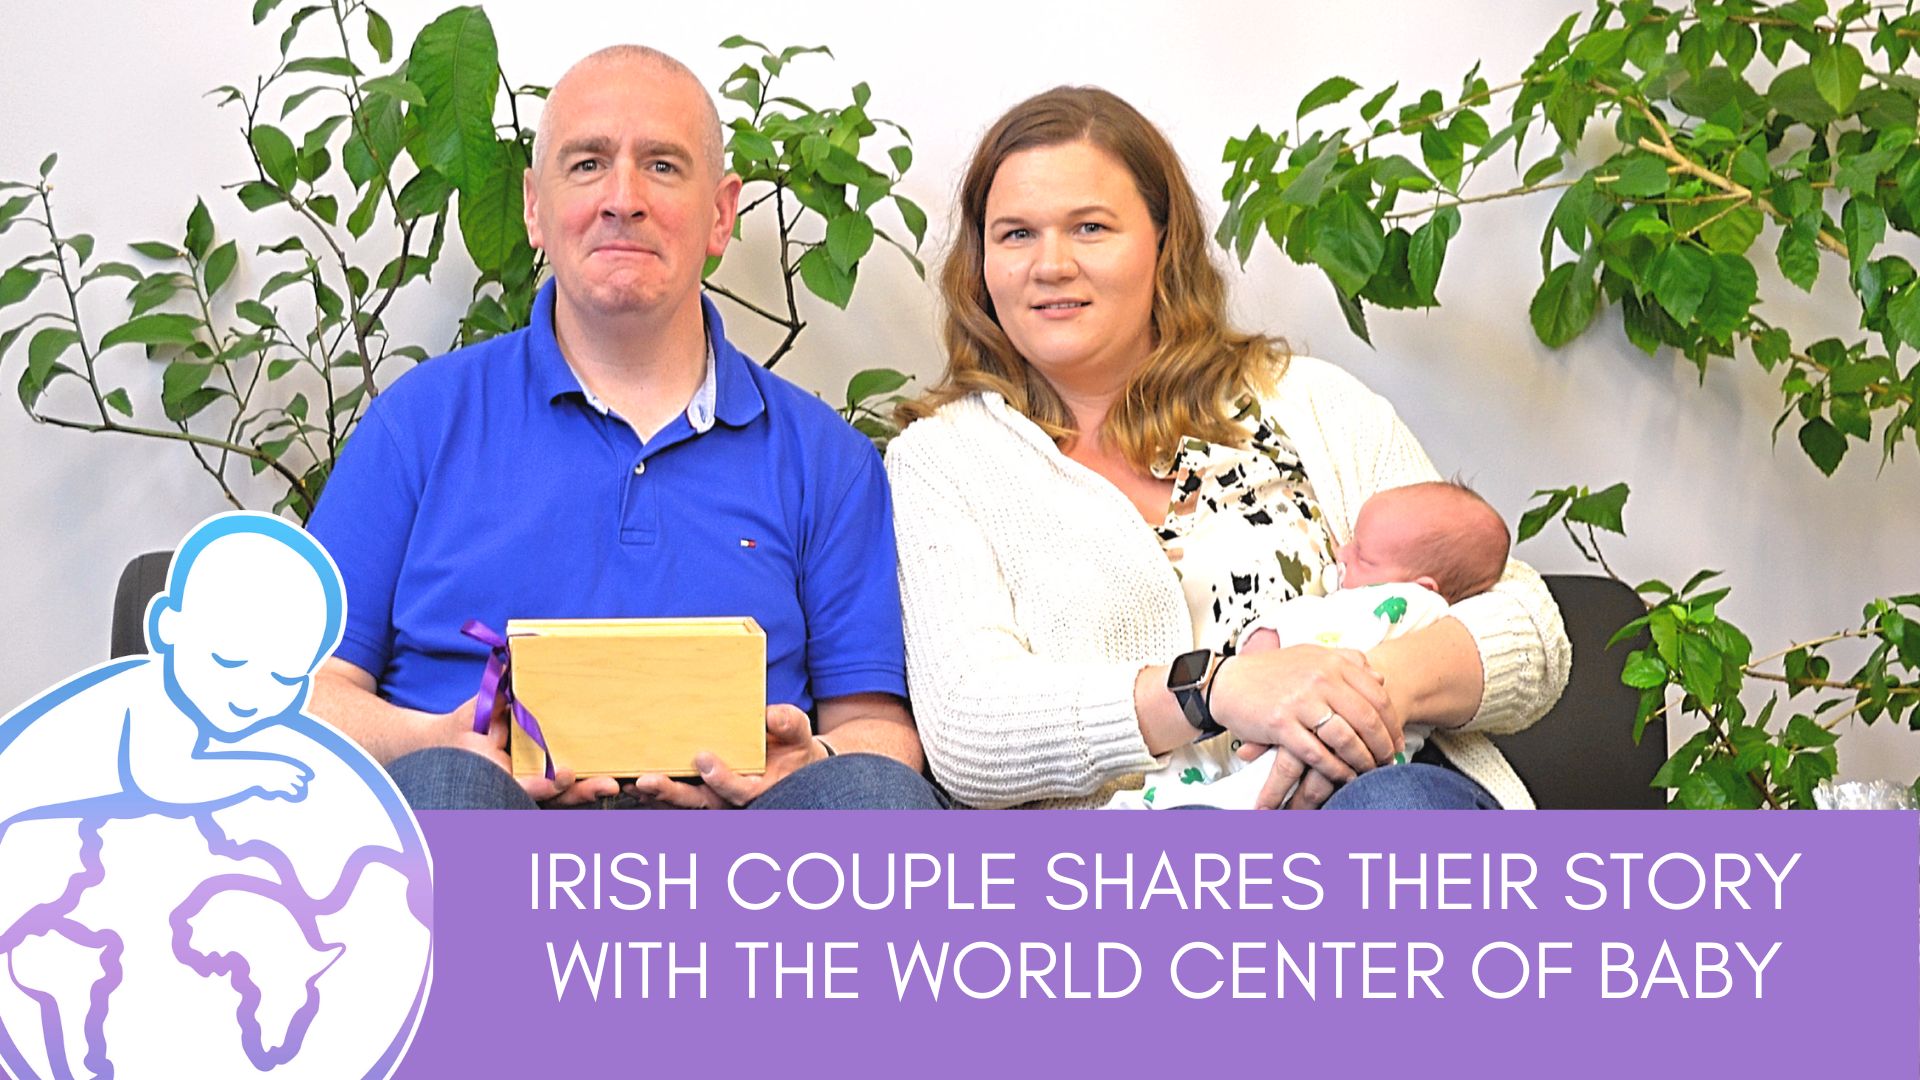 Our Surrogacy Journey — an Irish Couple Shares Their Story With the World Center of Baby